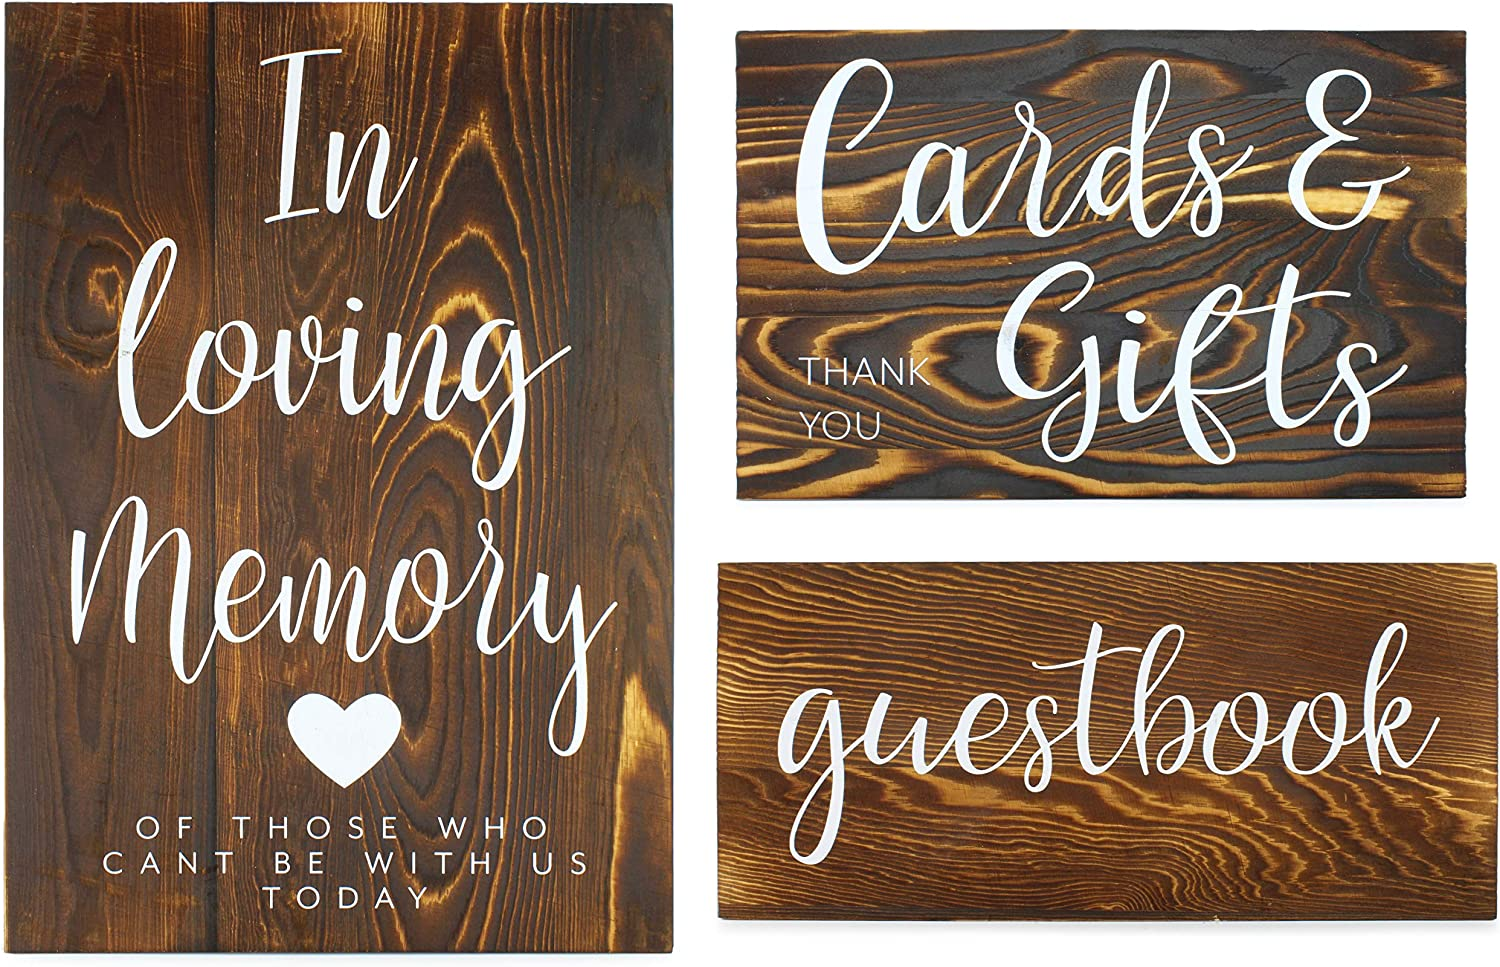 Darware Wooden Wedding Reception Signs (Set of 3); for Guests, Gifts, and Memorial